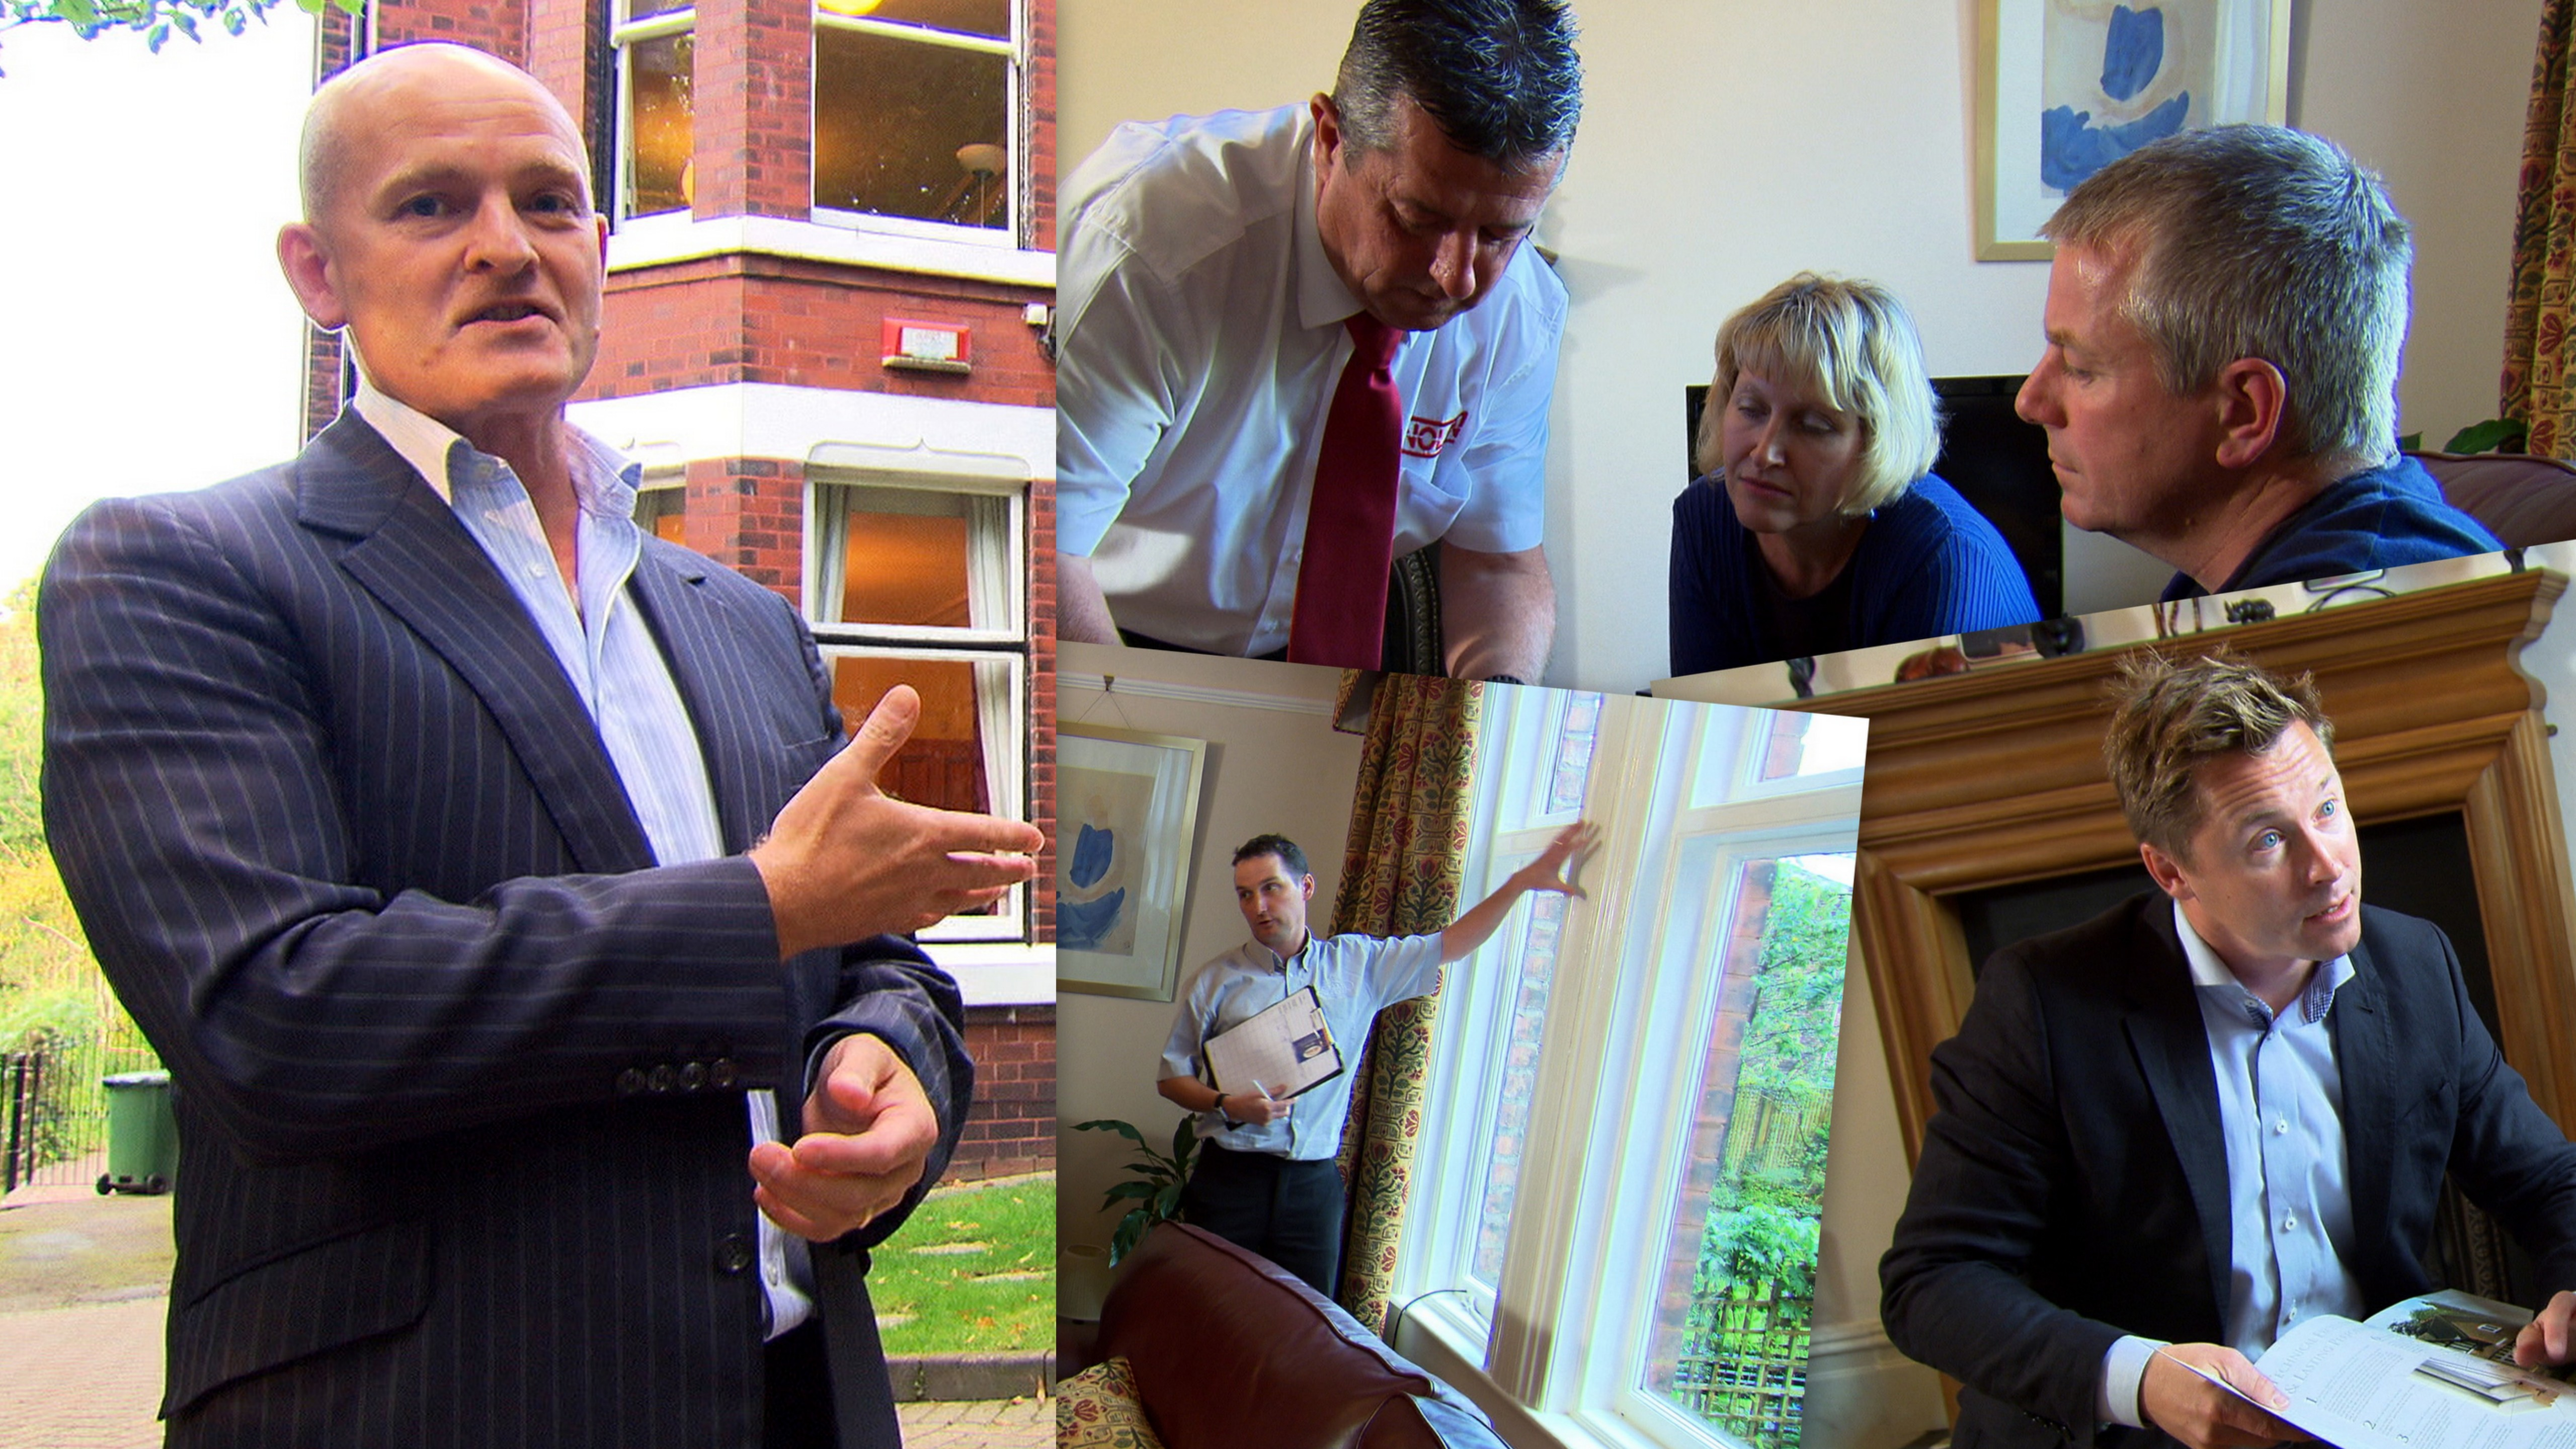 Paul Clifton invites viewers to make their own judgeent in the latest vi...